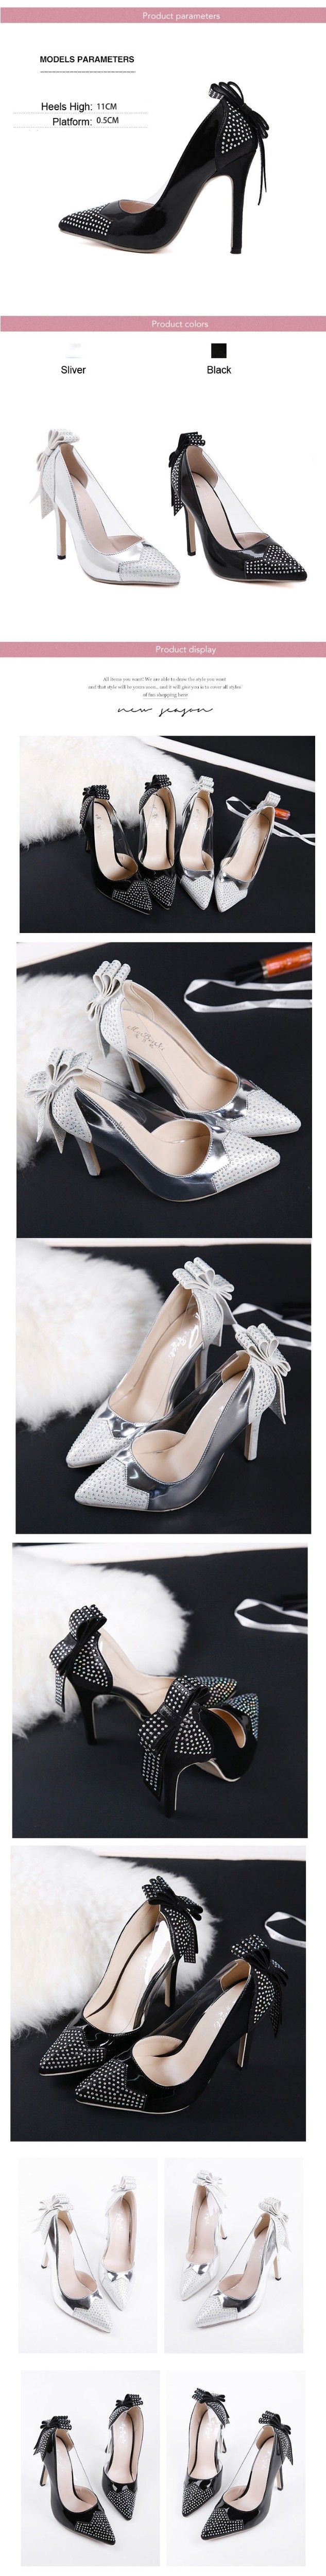 Fashion Thin High Heels Women Pumps Sexy Rhinestone Pointed Toe Party Shoes New Arrival Women Pump Shoes Sliver Black ZM2.5